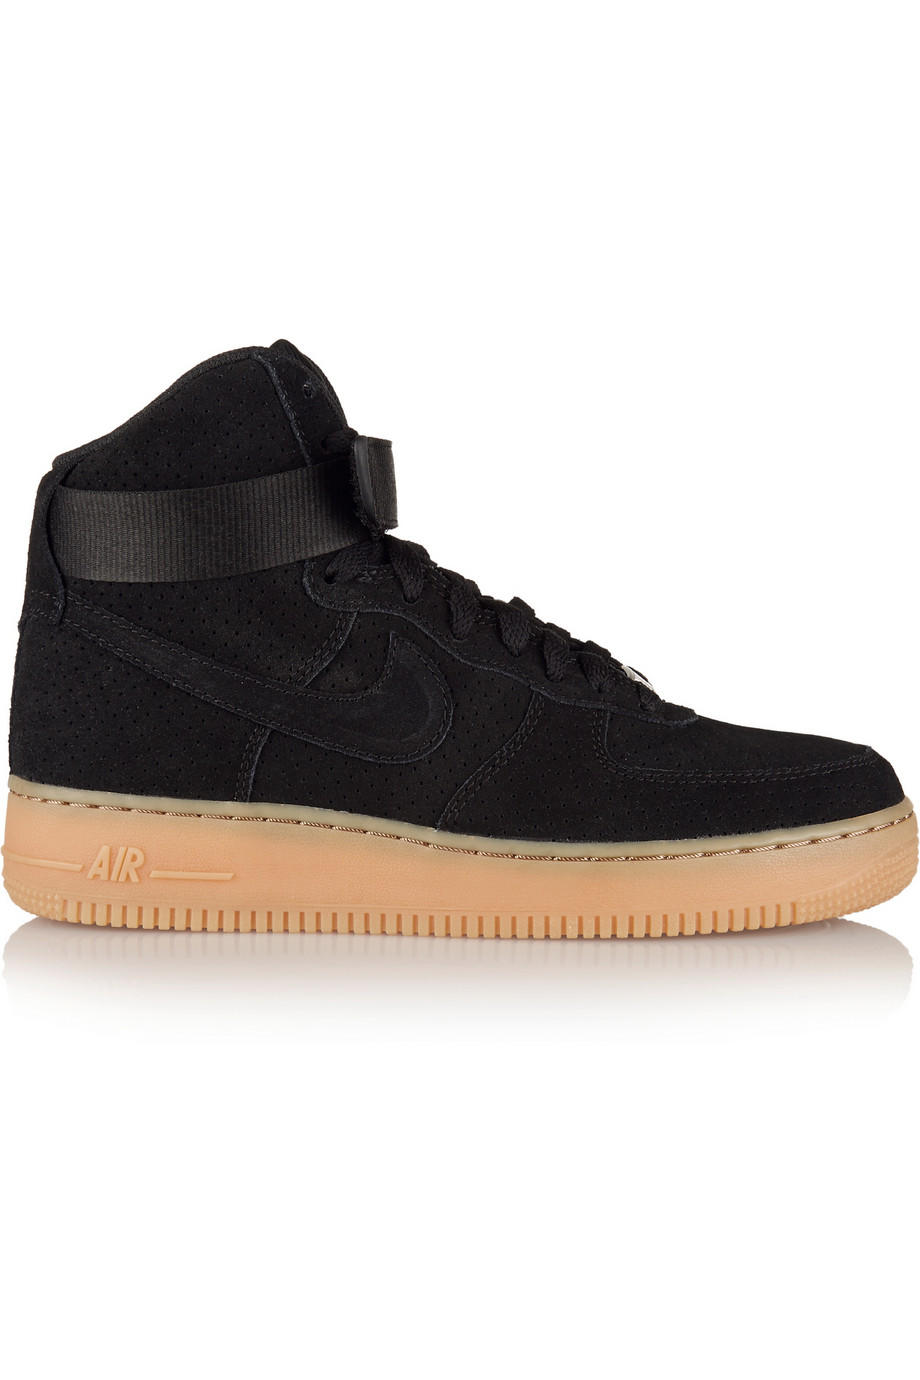 Nike - Air Force 1 Hi suede sneakers from NET-A-PORTER 18b861090